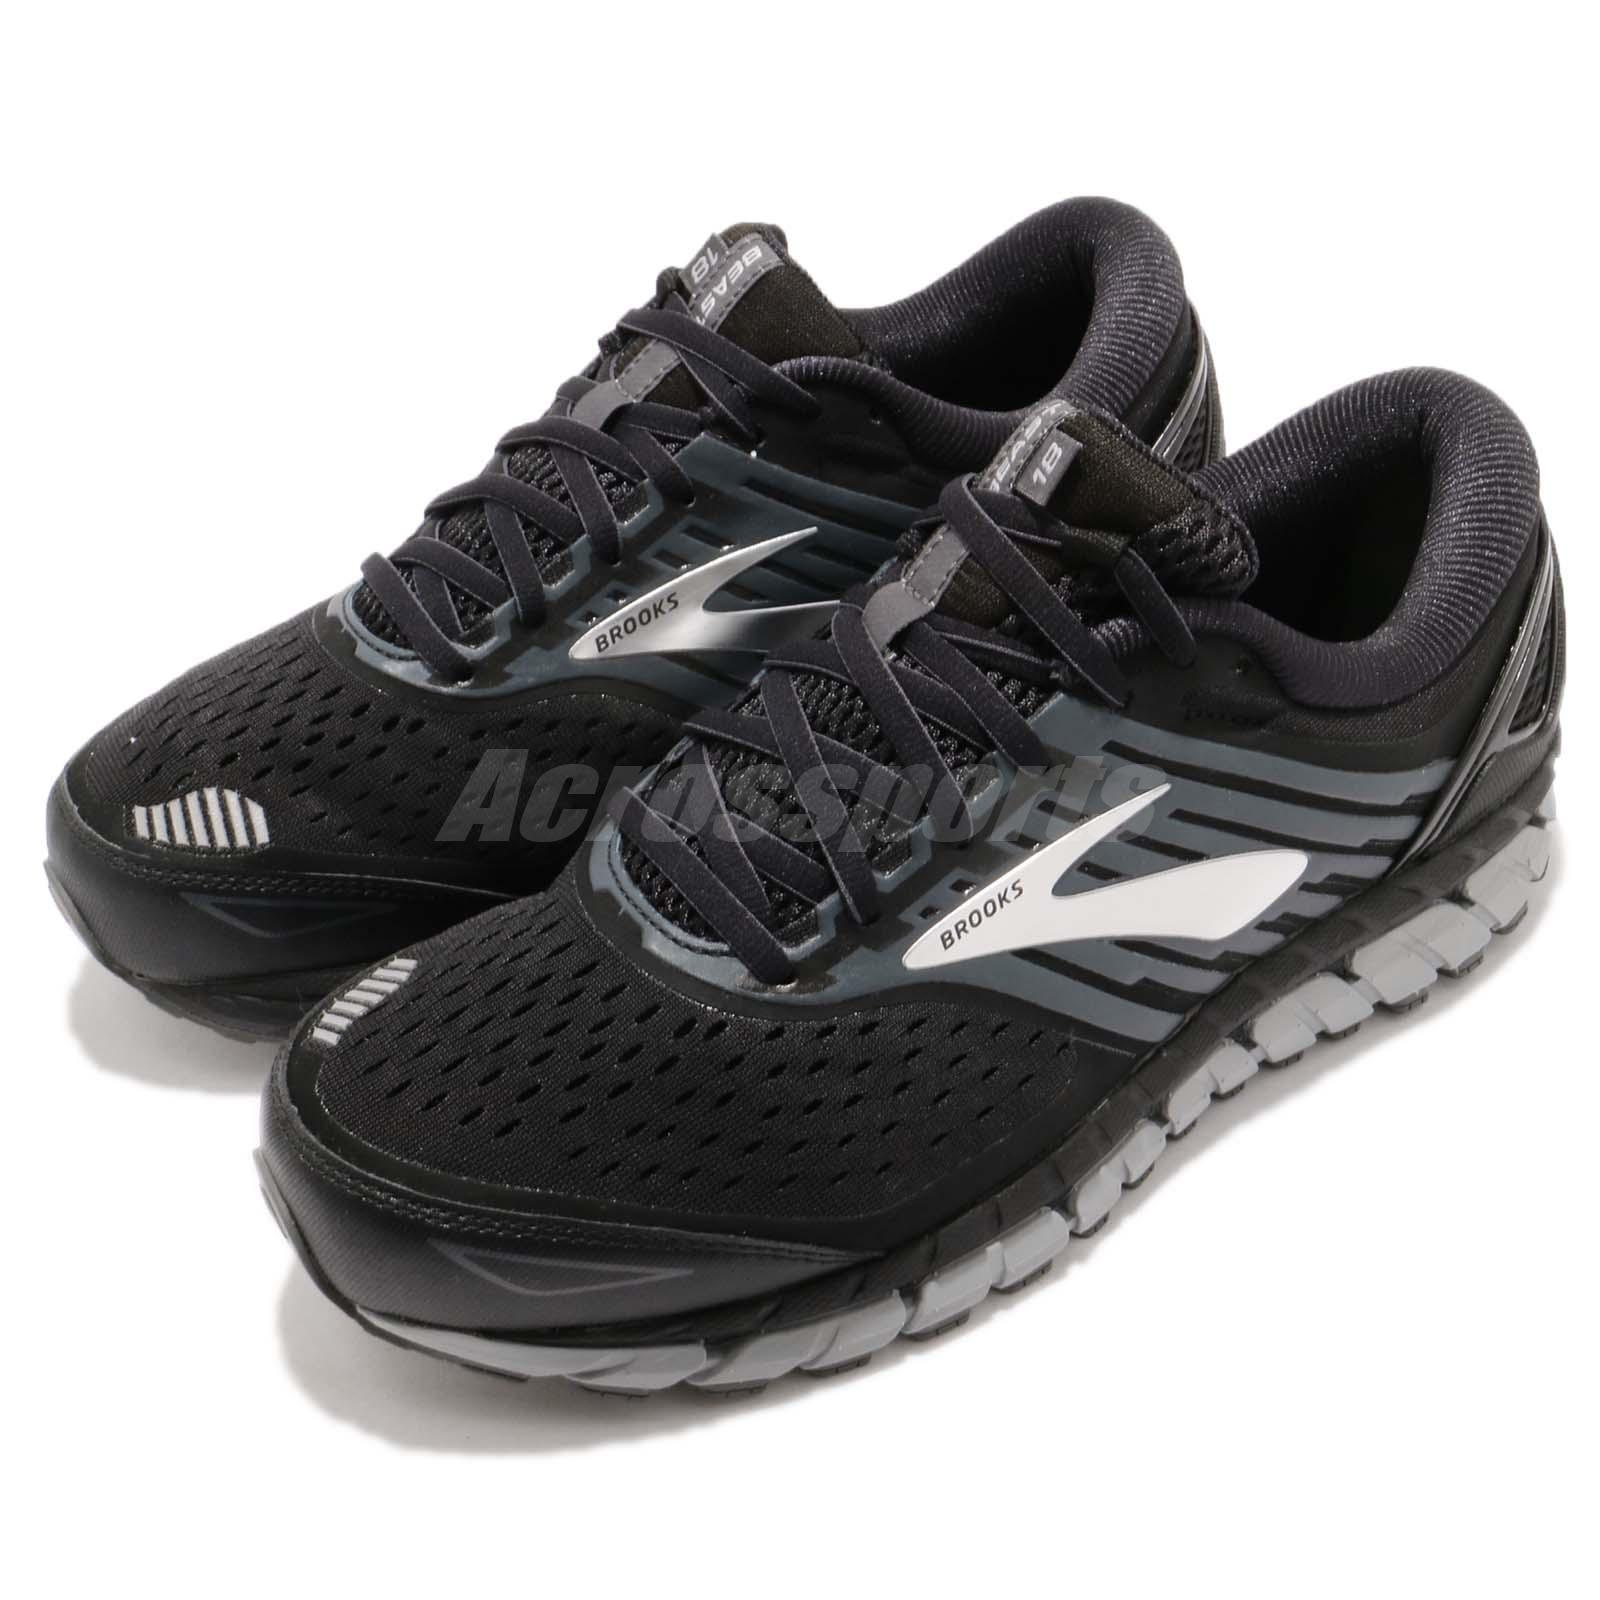 13f38e00f2659 Details about Brooks Beast 18 4E Extra Wide Black Grey Silver Men Running  Shoes 110282 4E